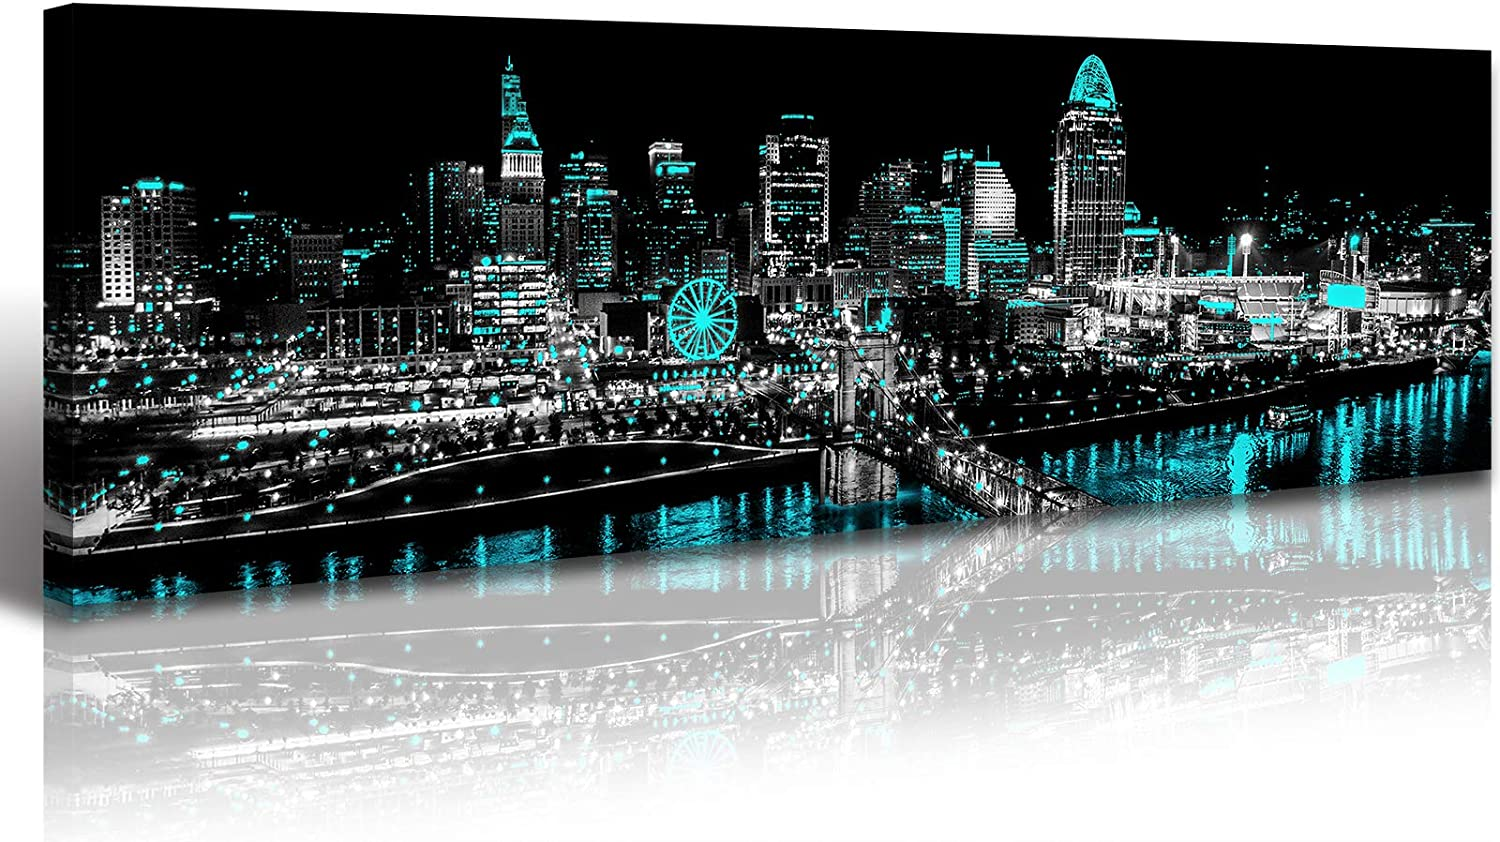 Black and White Panoramic Cincinnati City Skyline Wall Art Modern Cityscape Pictures Artwork Teal Turquoise Paintings on Canvas for Bedroom Home Decorations Office Decor Ready to Hang 14x48